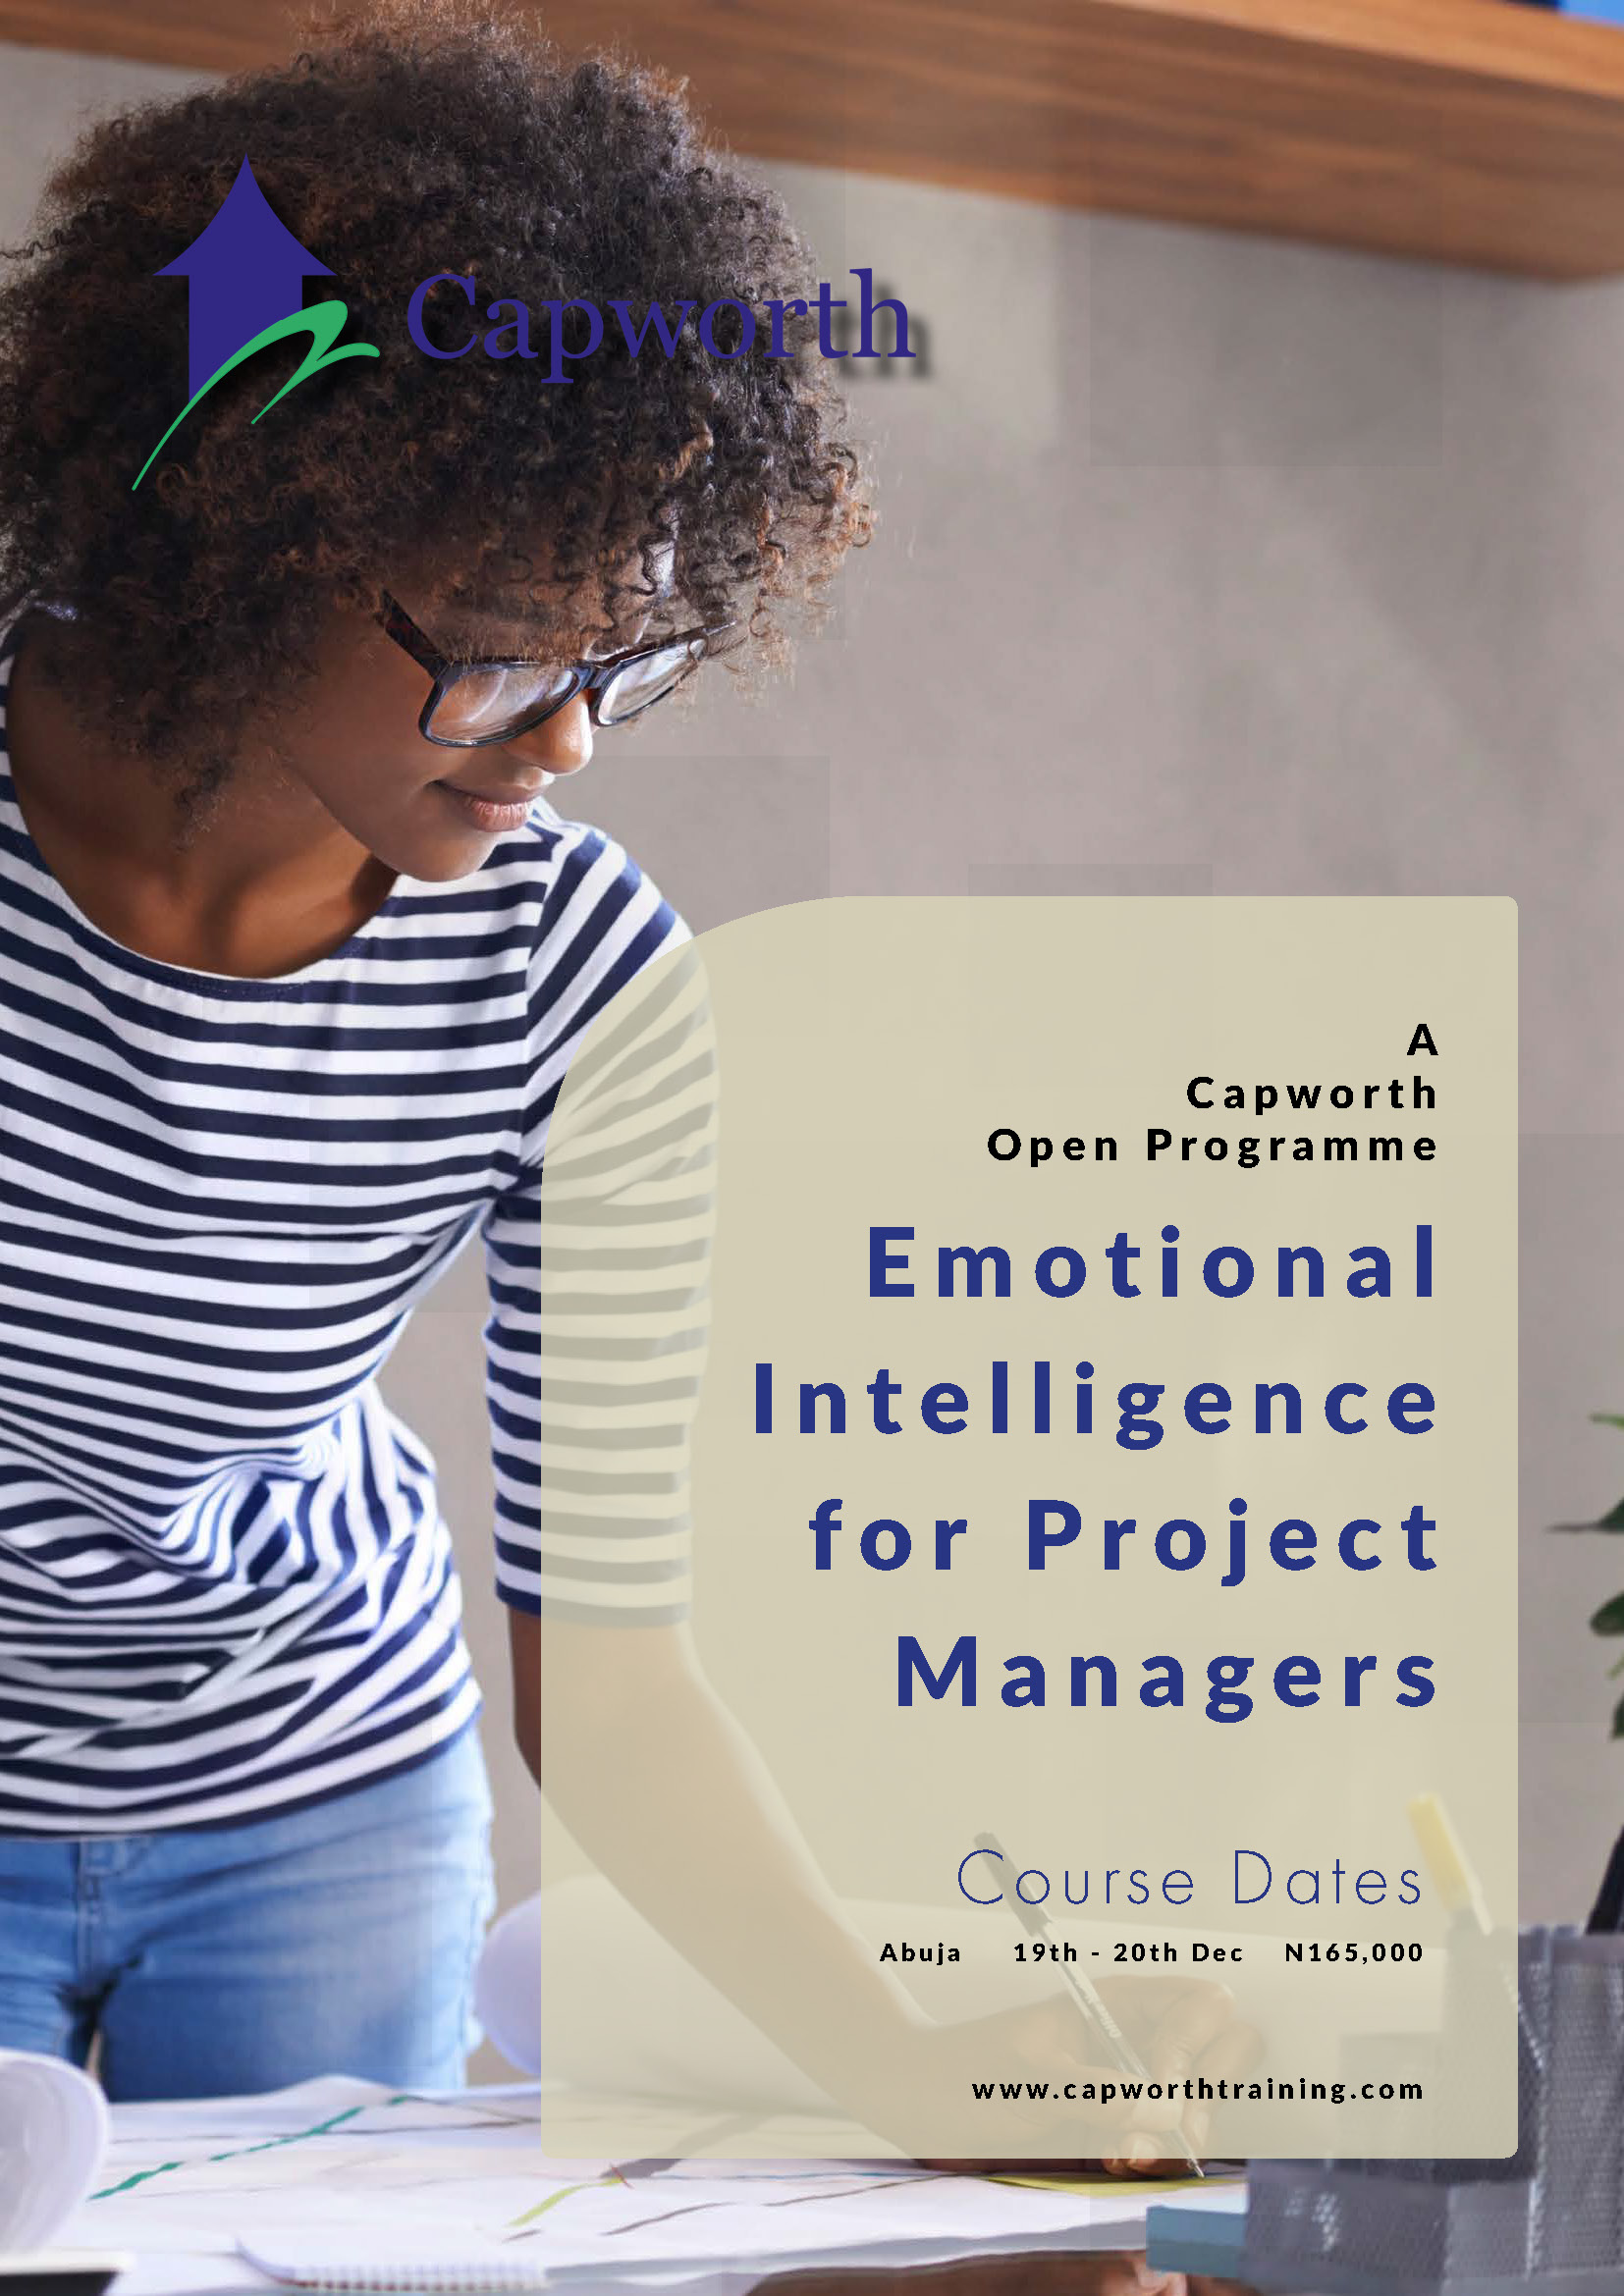 Emotional Intelligence for Project Managers - International_Nigeria - Q4 - 2018 - Open Course - v2.0 Dec_Page_1.jpg